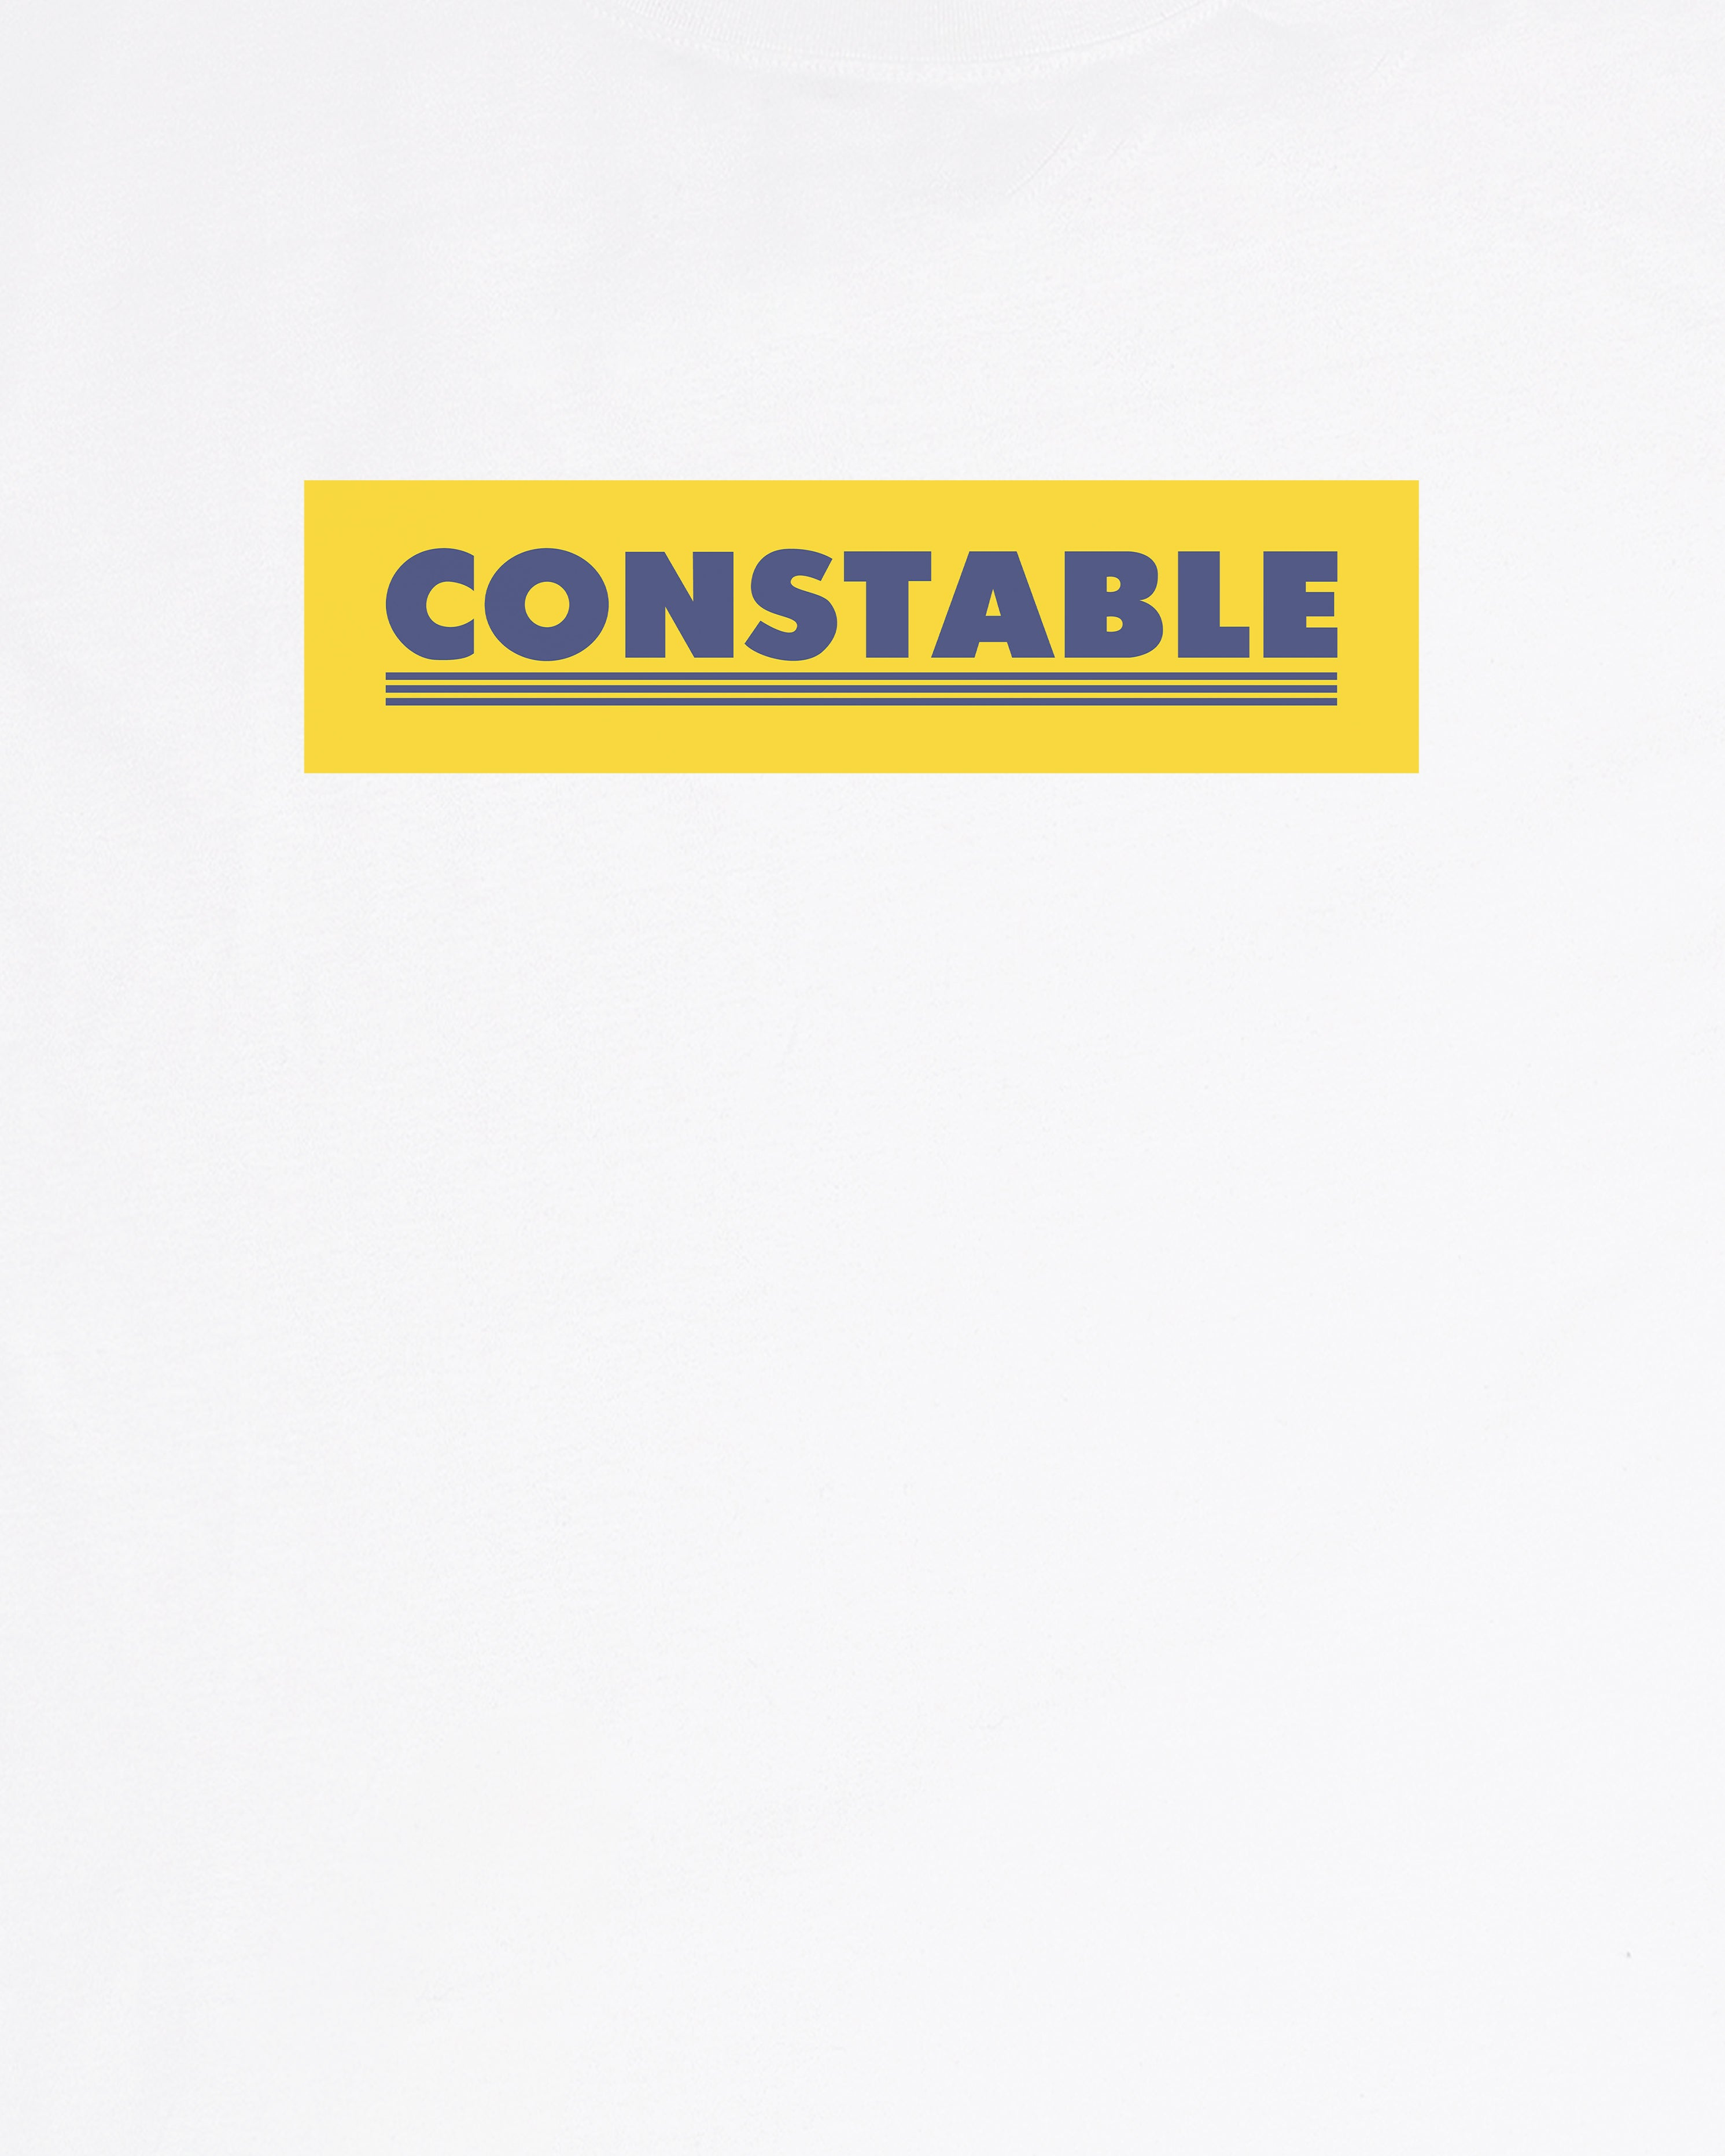 Bootleg Constable - Tee or Sweat